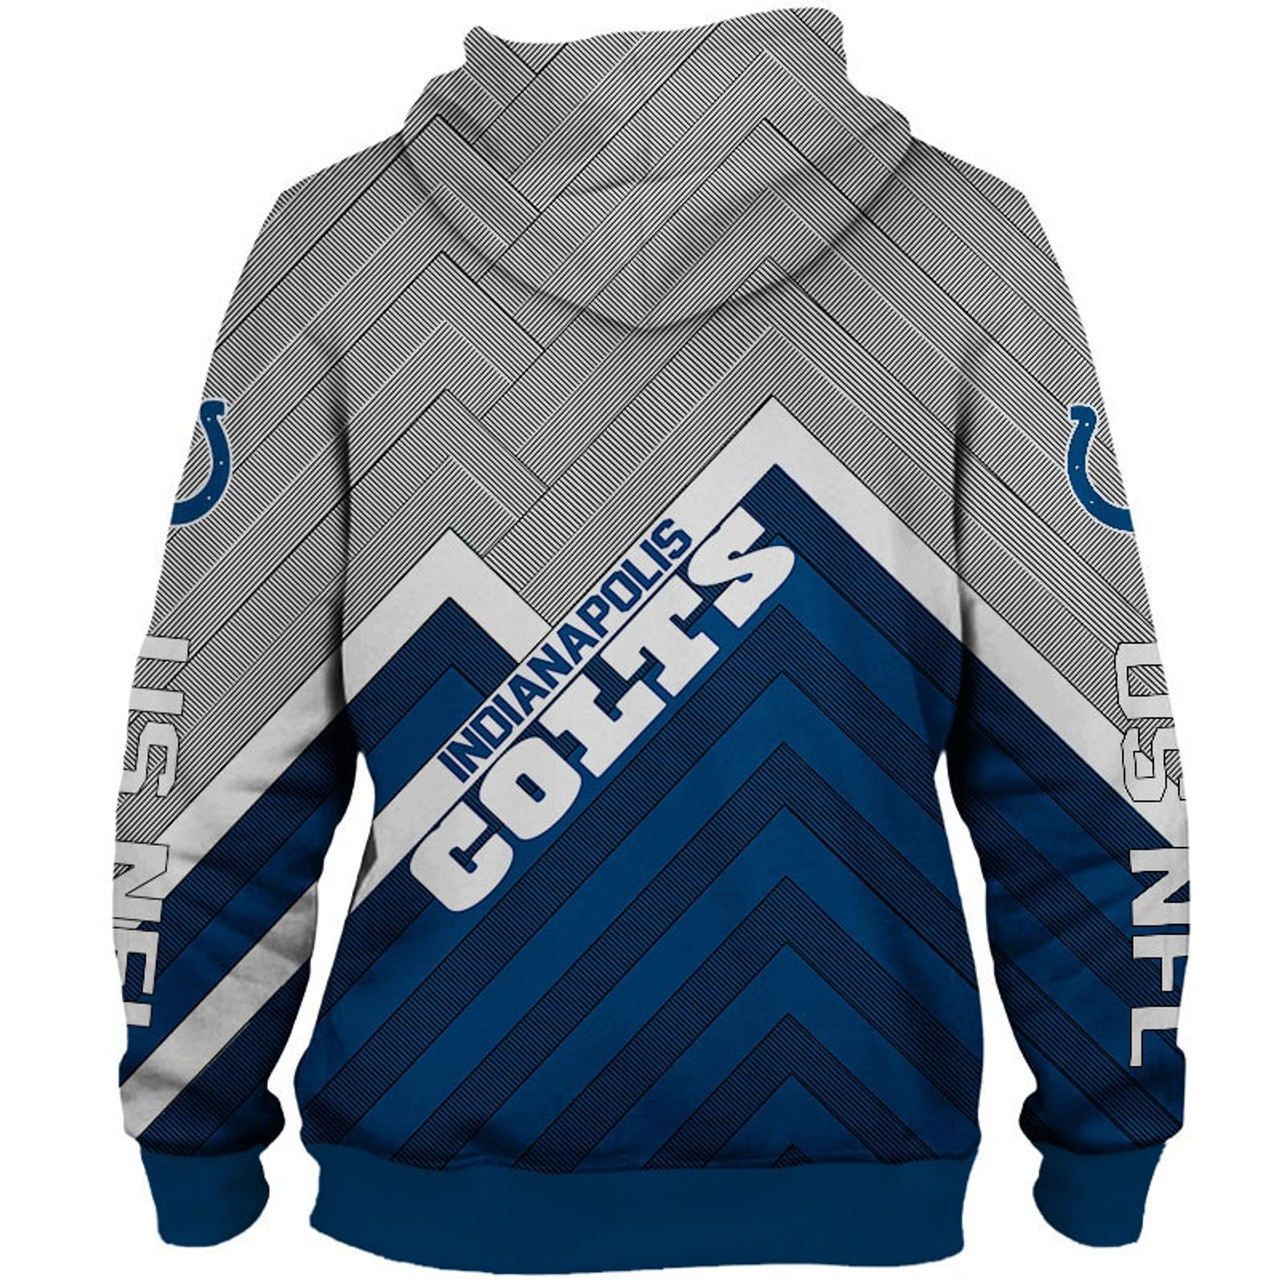 **(NEW-OFFICIAL-N.F.L.INDIANAPOLIS-COLTS-PULLOVER-HOODIES/3D-CUSTOM-COLTS-LOGOS & OFFICIAL-COLTS-TEAM-COLORS/NICE-3D-DETAILED-GRAPHIC-PRINTED-DOUBLE-SIDED/ALL-OVER-ENTIRE-HOODIE-PRINTED-DESIGN/TRENDY-WARM-PREMIUM-COLTS-PULLOVER-HOODIES)**